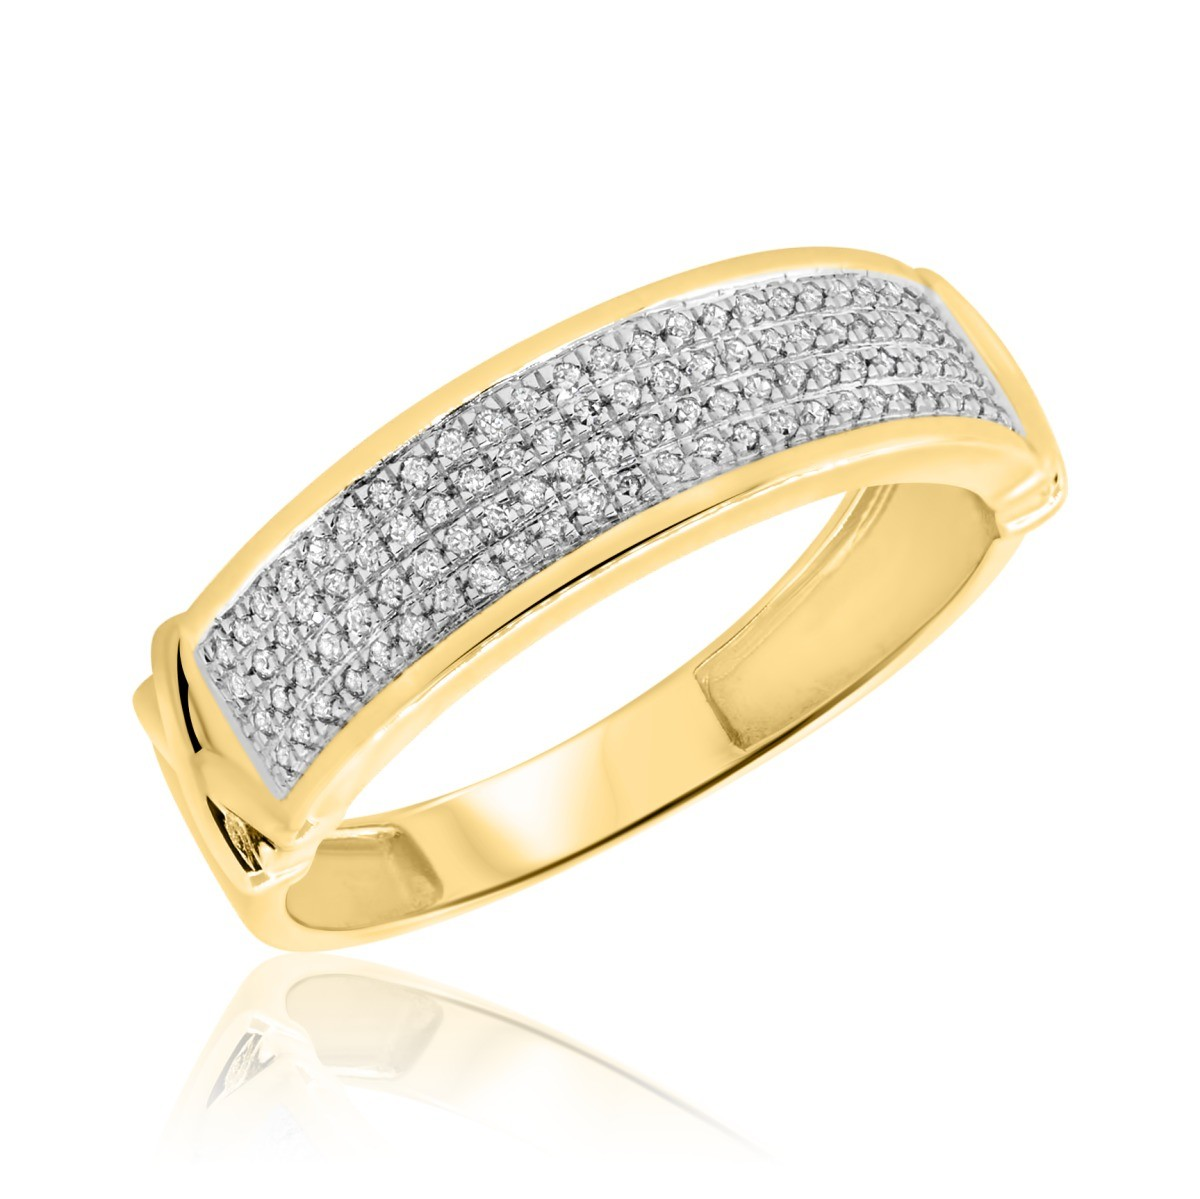 1/4 Carat T.W. Diamond Mens Wedding Band  14K Yellow Gold